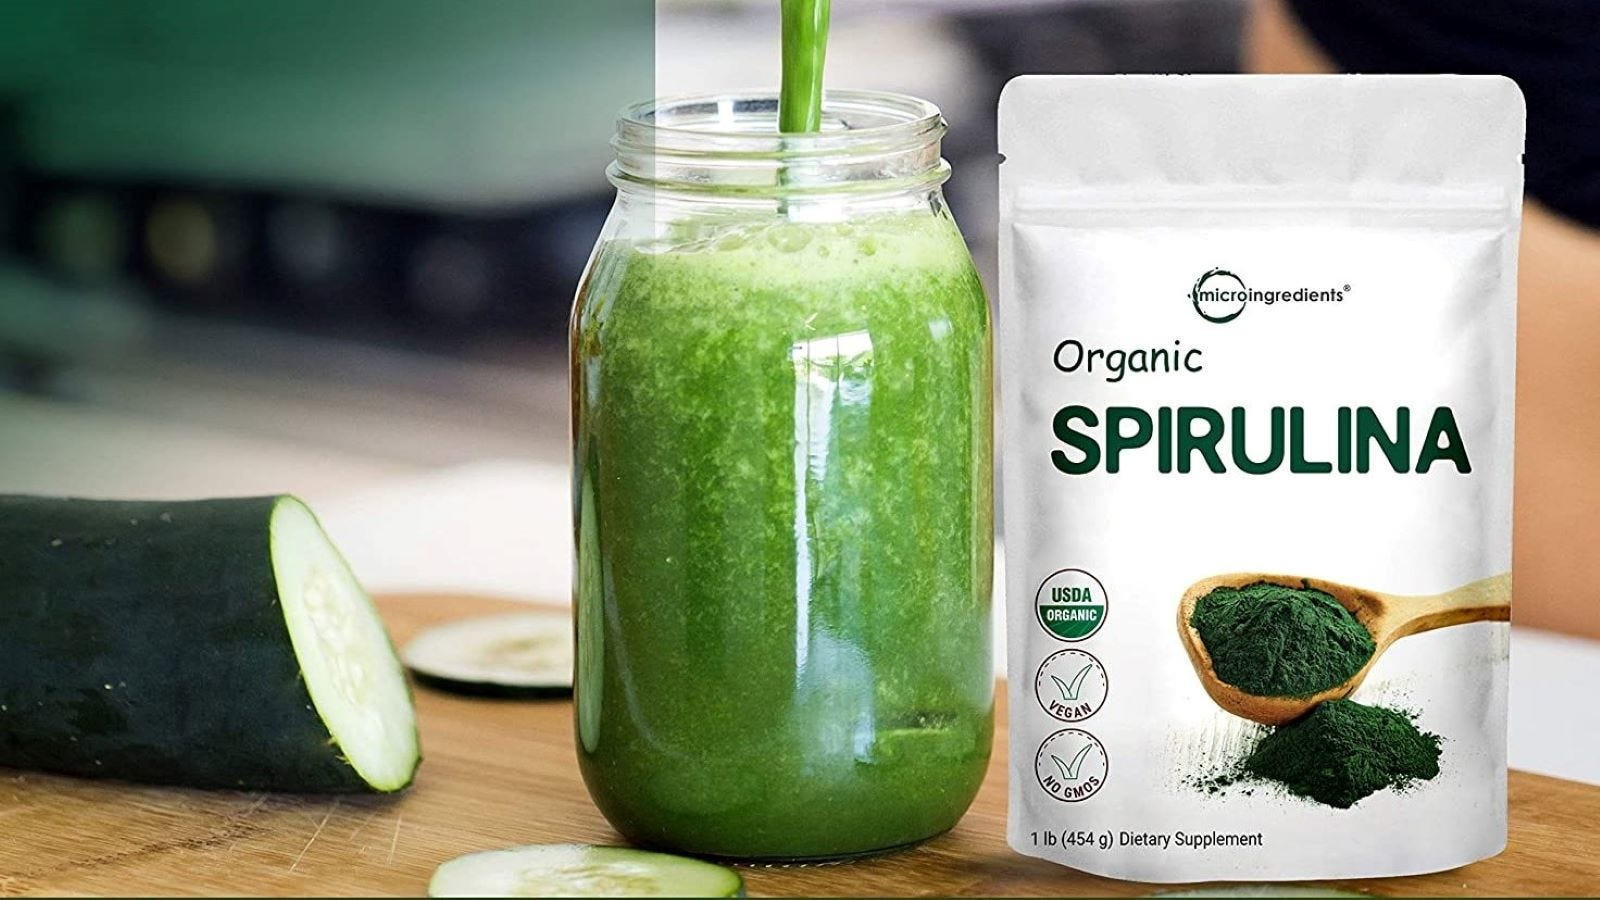 A sliced cucumber sitting next to a green smoothie in a jar and a package of Spirulina.